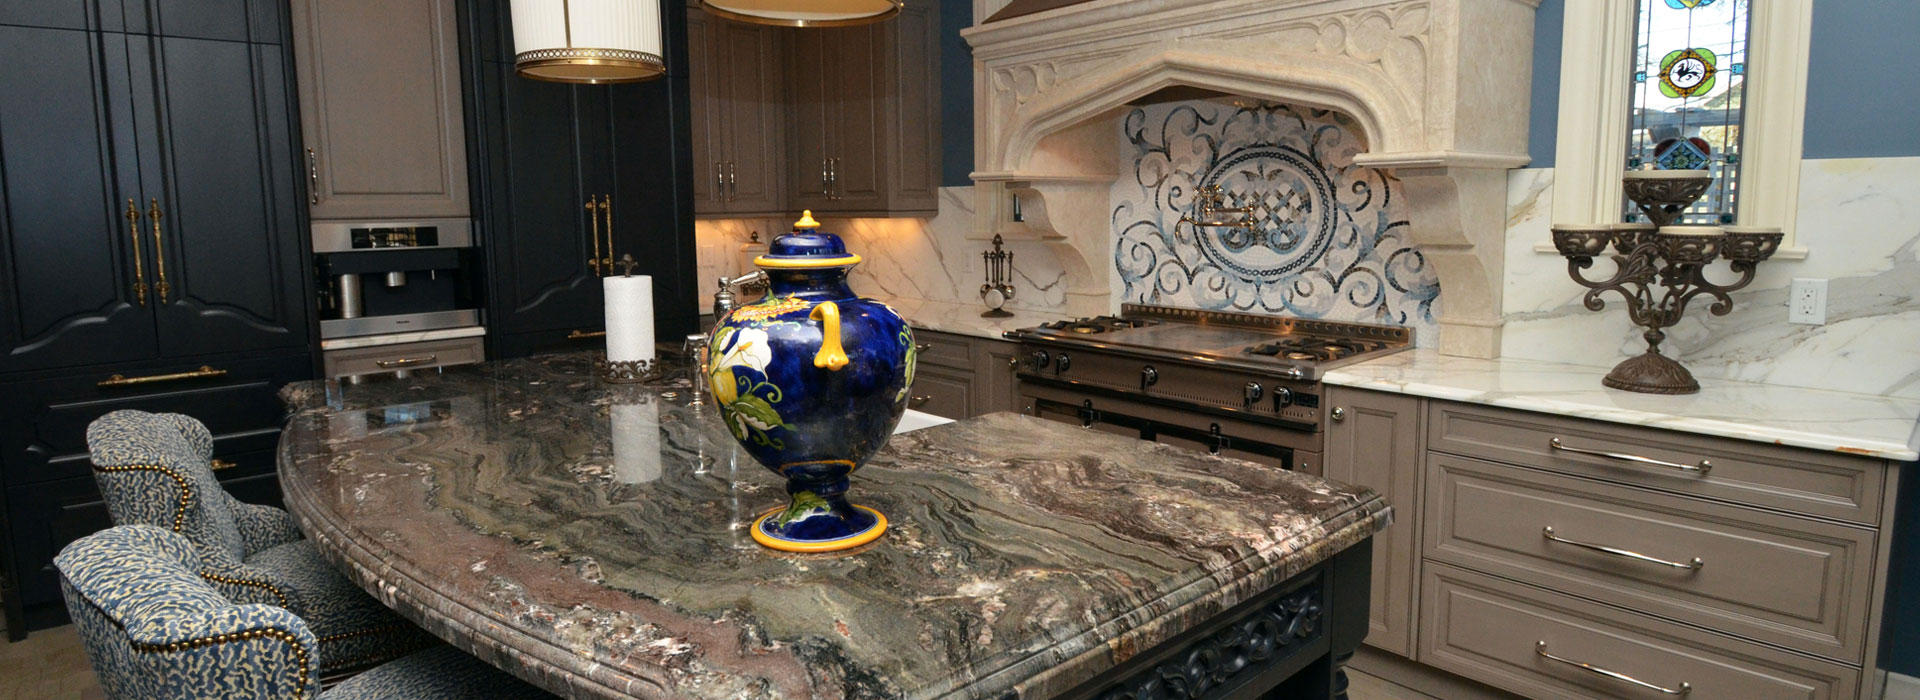 Marble Granite Countertop Products In Buffalo Ny Italian Marble Granite